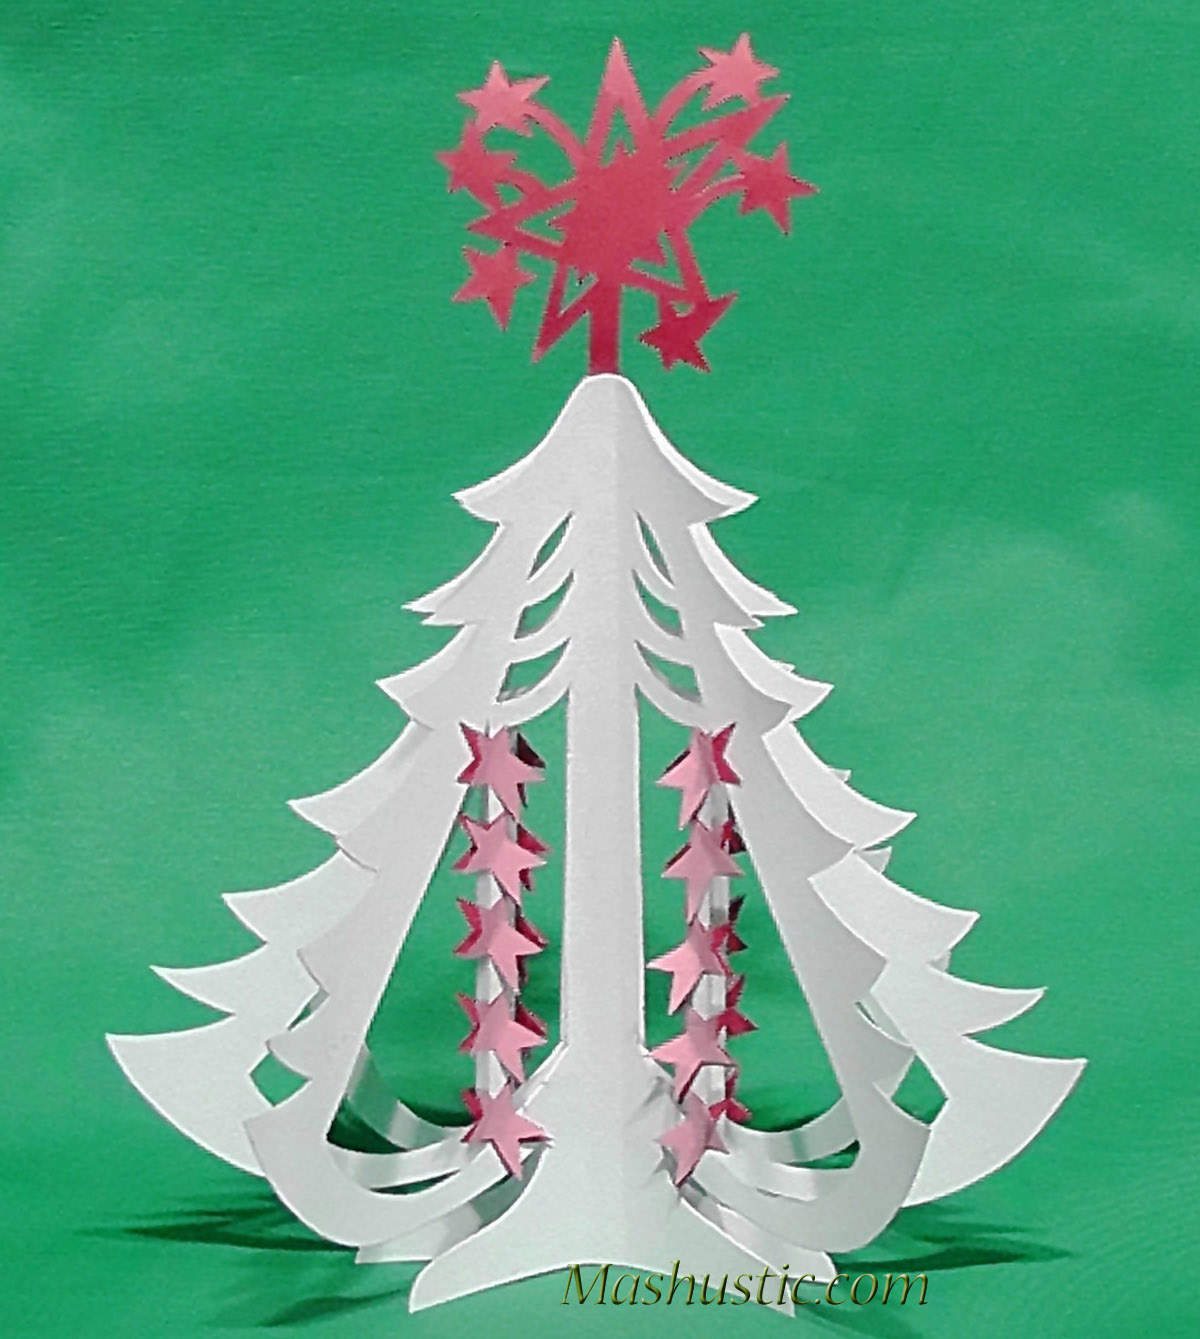 3d Paper Christmas Tree Template.Miniature Christmas Paper Tree Diy Mashustic Com